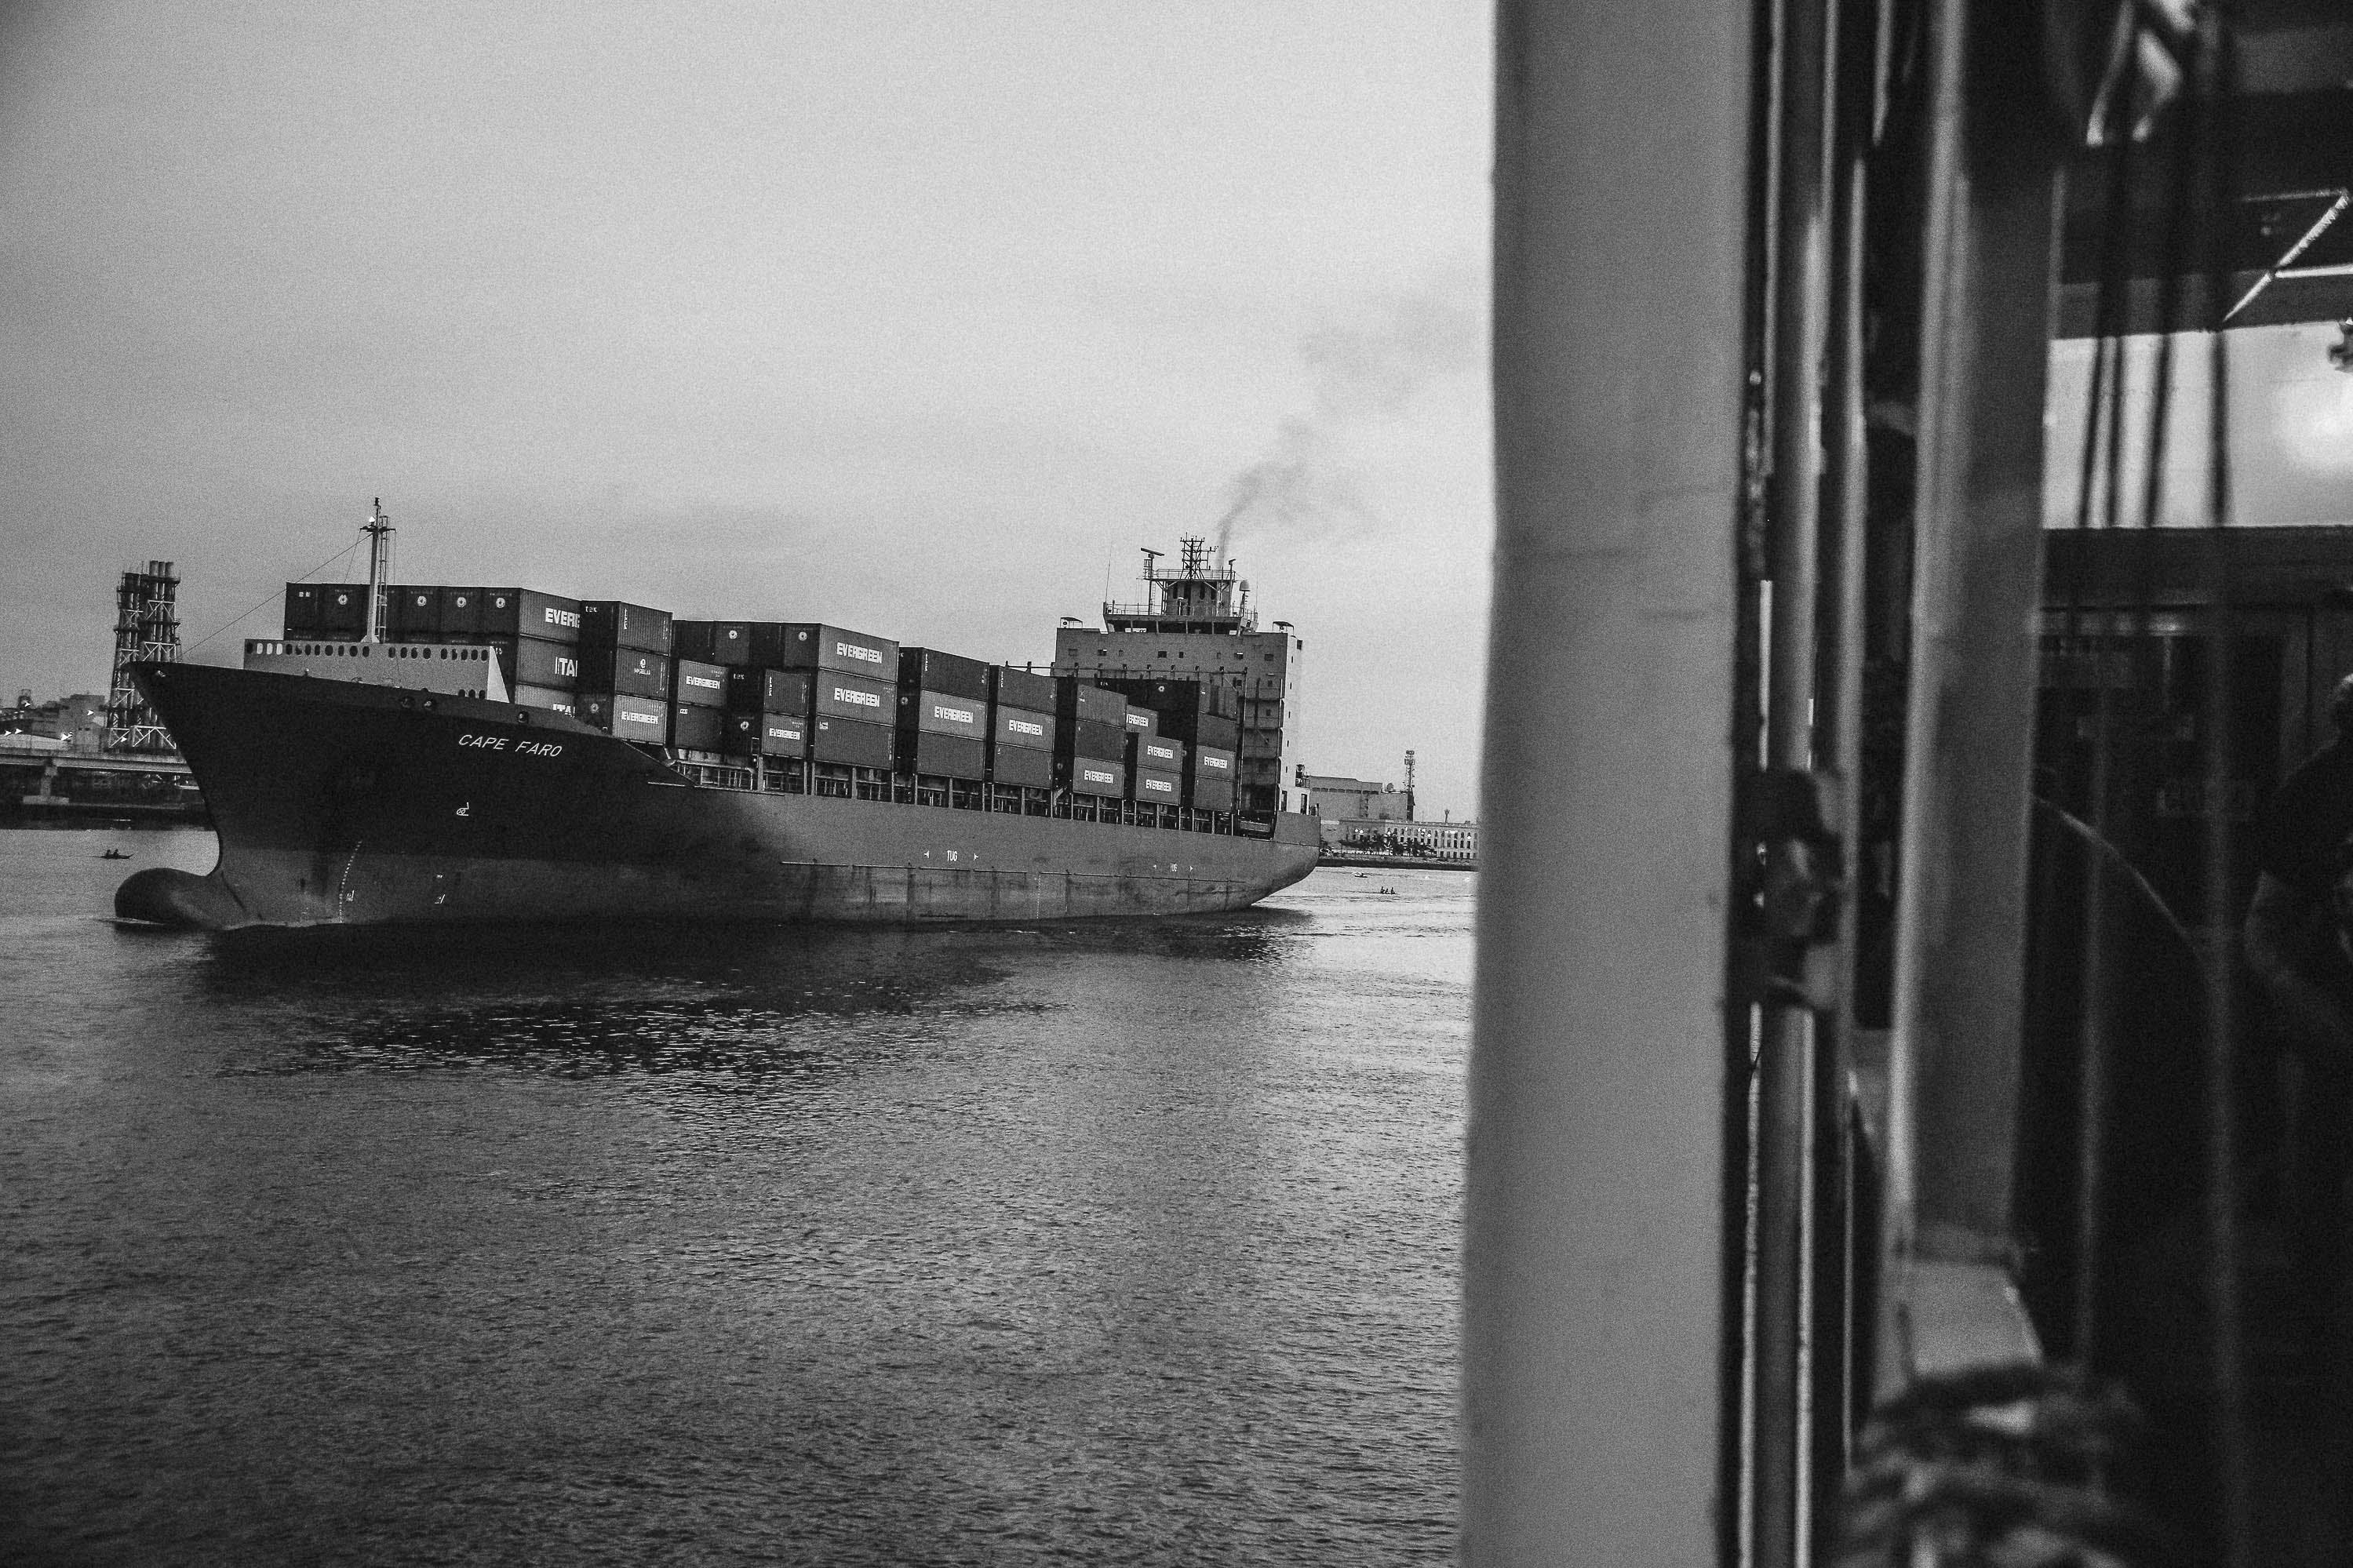 Greyscale Photo of Cargo Ship on Ocean